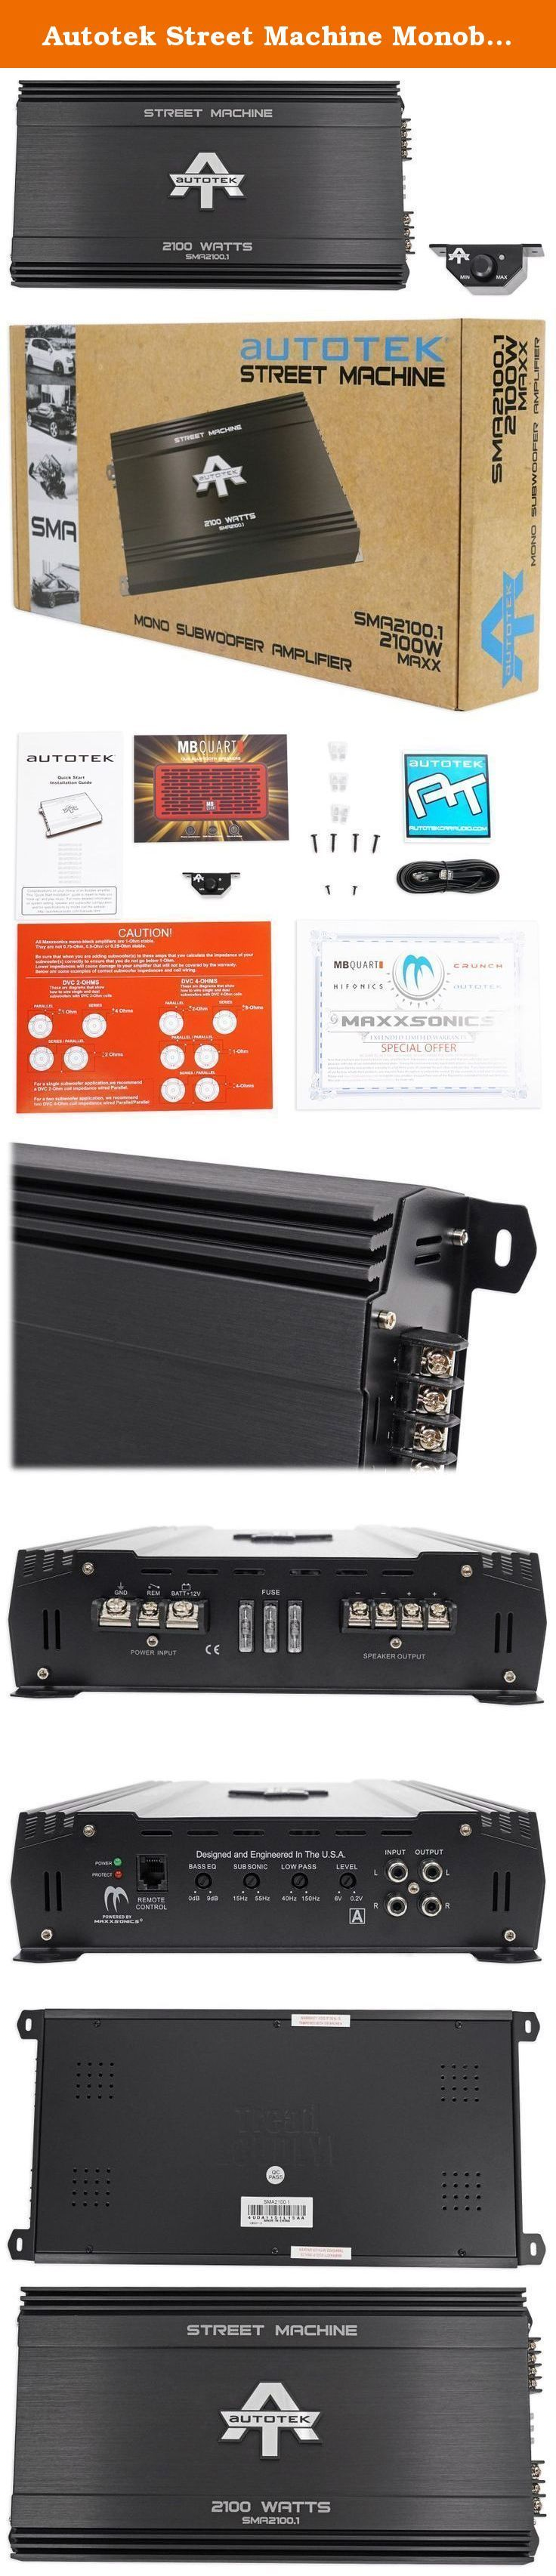 Autotek Street Machine Monoblock Class AB Amp (2,100 Watts) SMA2100.1. Includes remote. Screw and surface mount. Signal to noise ratio > 95 dB. Total harmonic distortion < 0.5 %. Variable input voltage. Low to noise preamp. Low to level RCA inputs and outputs. Mono mode is intended for subwoofers only. Built to in variable electronic crossover (HP and LP). Onboard bass boost. Easily ties into OEM audio systems. 1 ohm stable. 2,100 watt max. 600 watt RMS x 1 @ 4ohm. 1,050 watt RMS x 1…